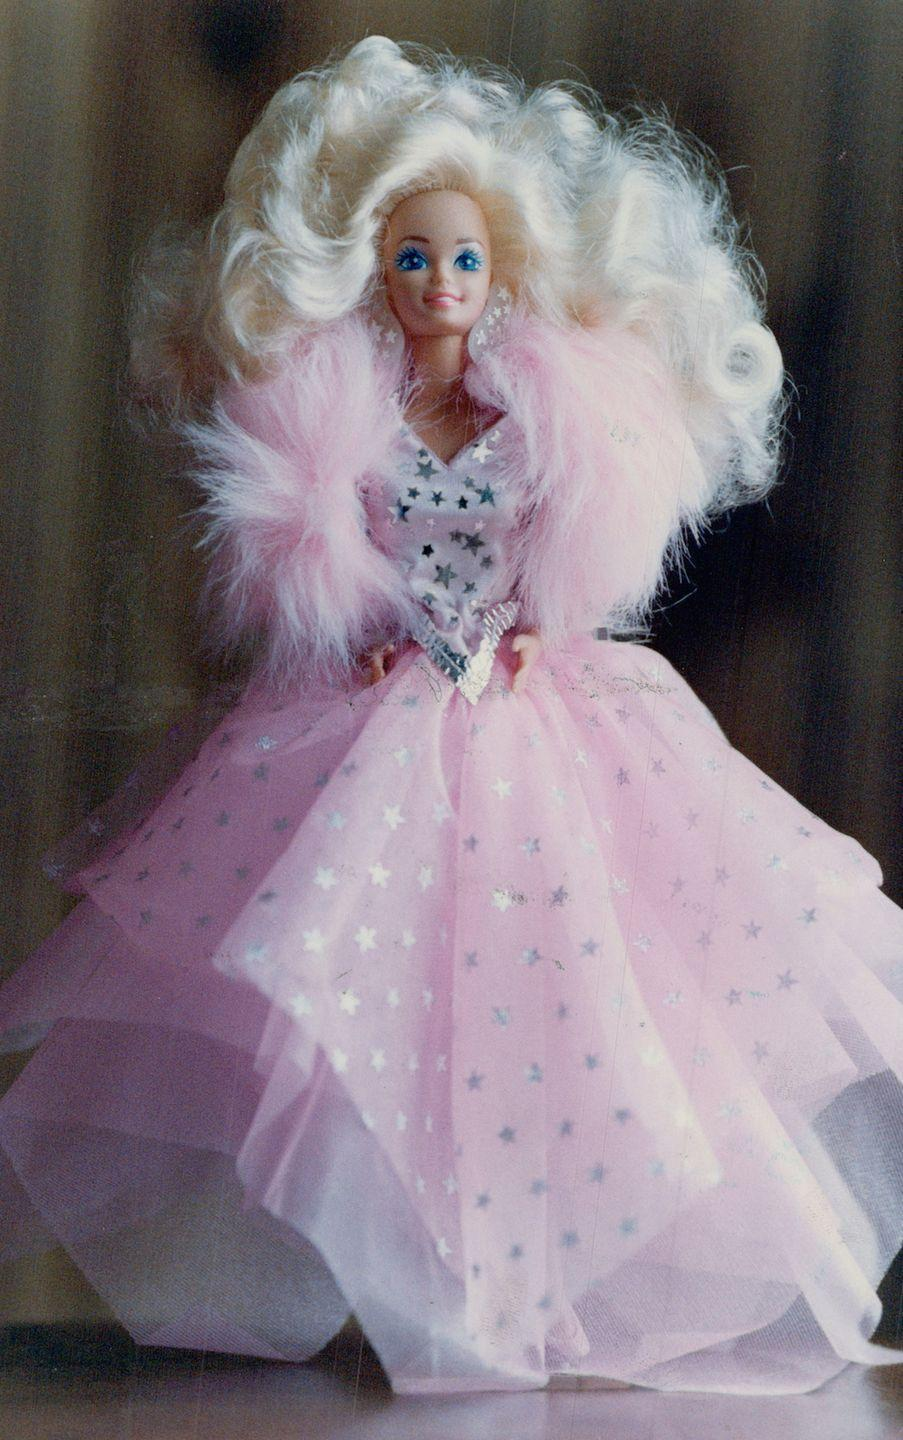 <p>Super Star Barbie says goodbye to the '80s in a big way, with the most voluminous hair we've seen yet, sequins, sparkles, tulle AND a faux fur wrap. </p>